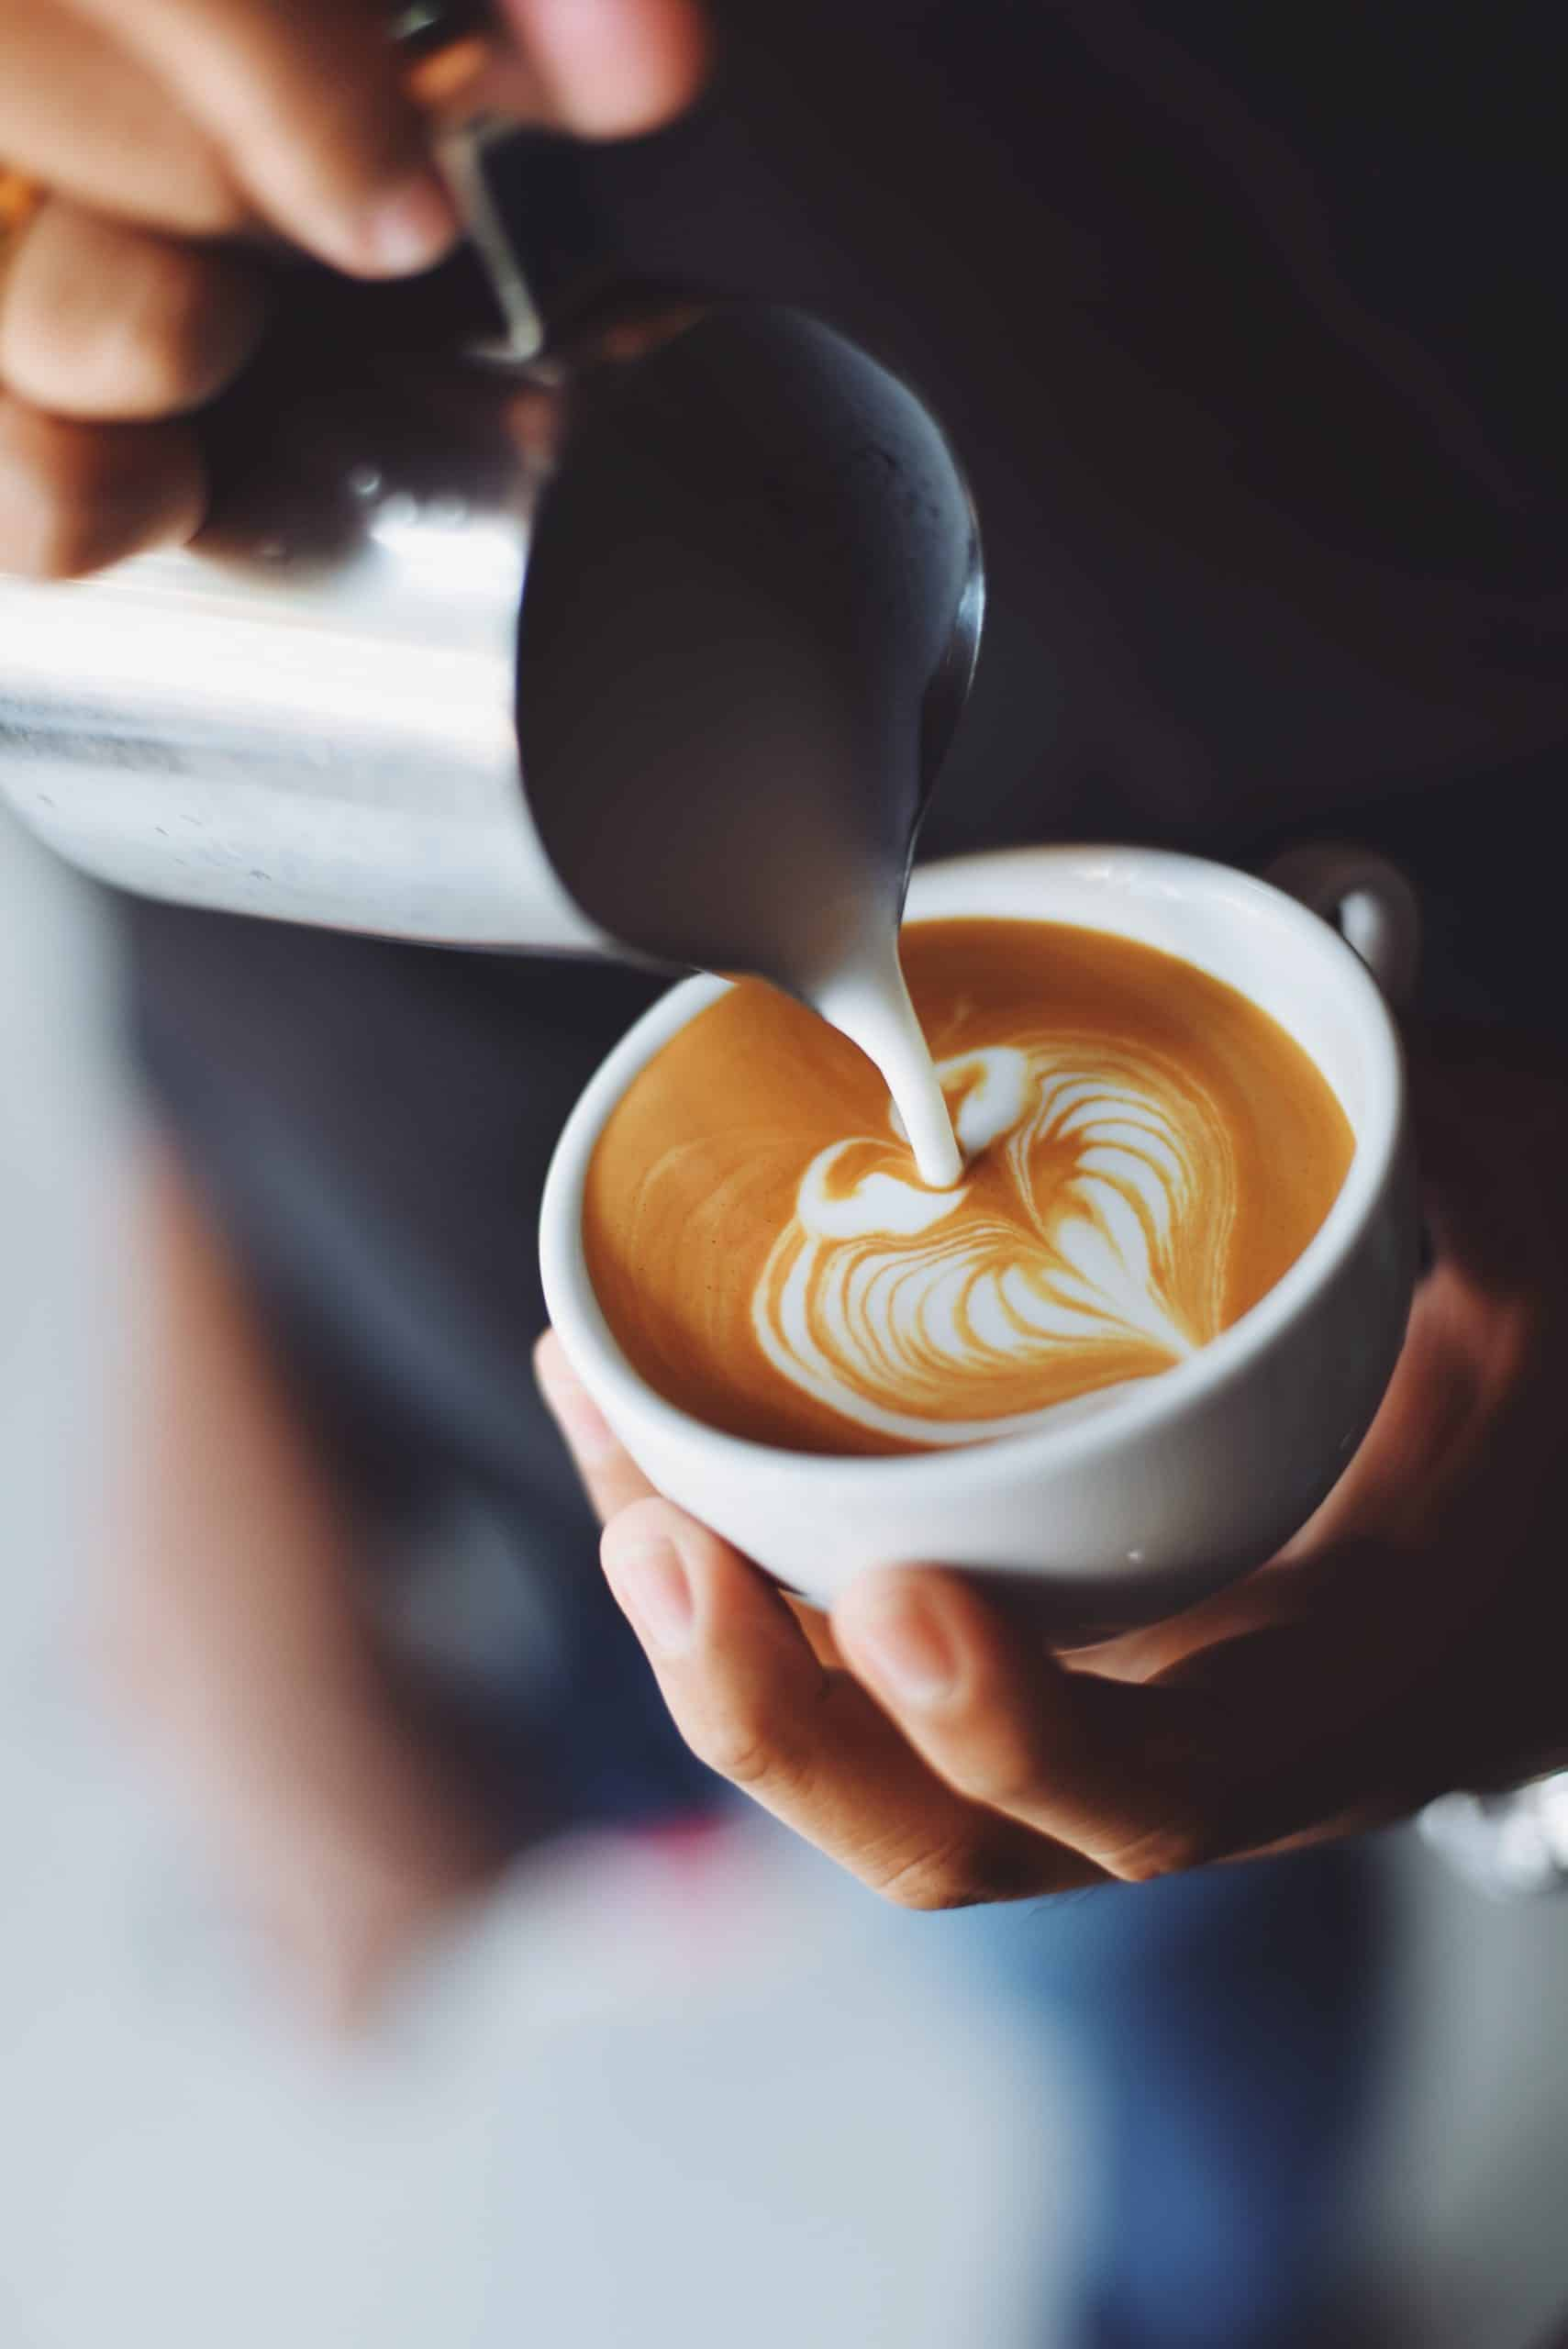 someone is pouring steamed milk into a latte while making a beautiful latte heart